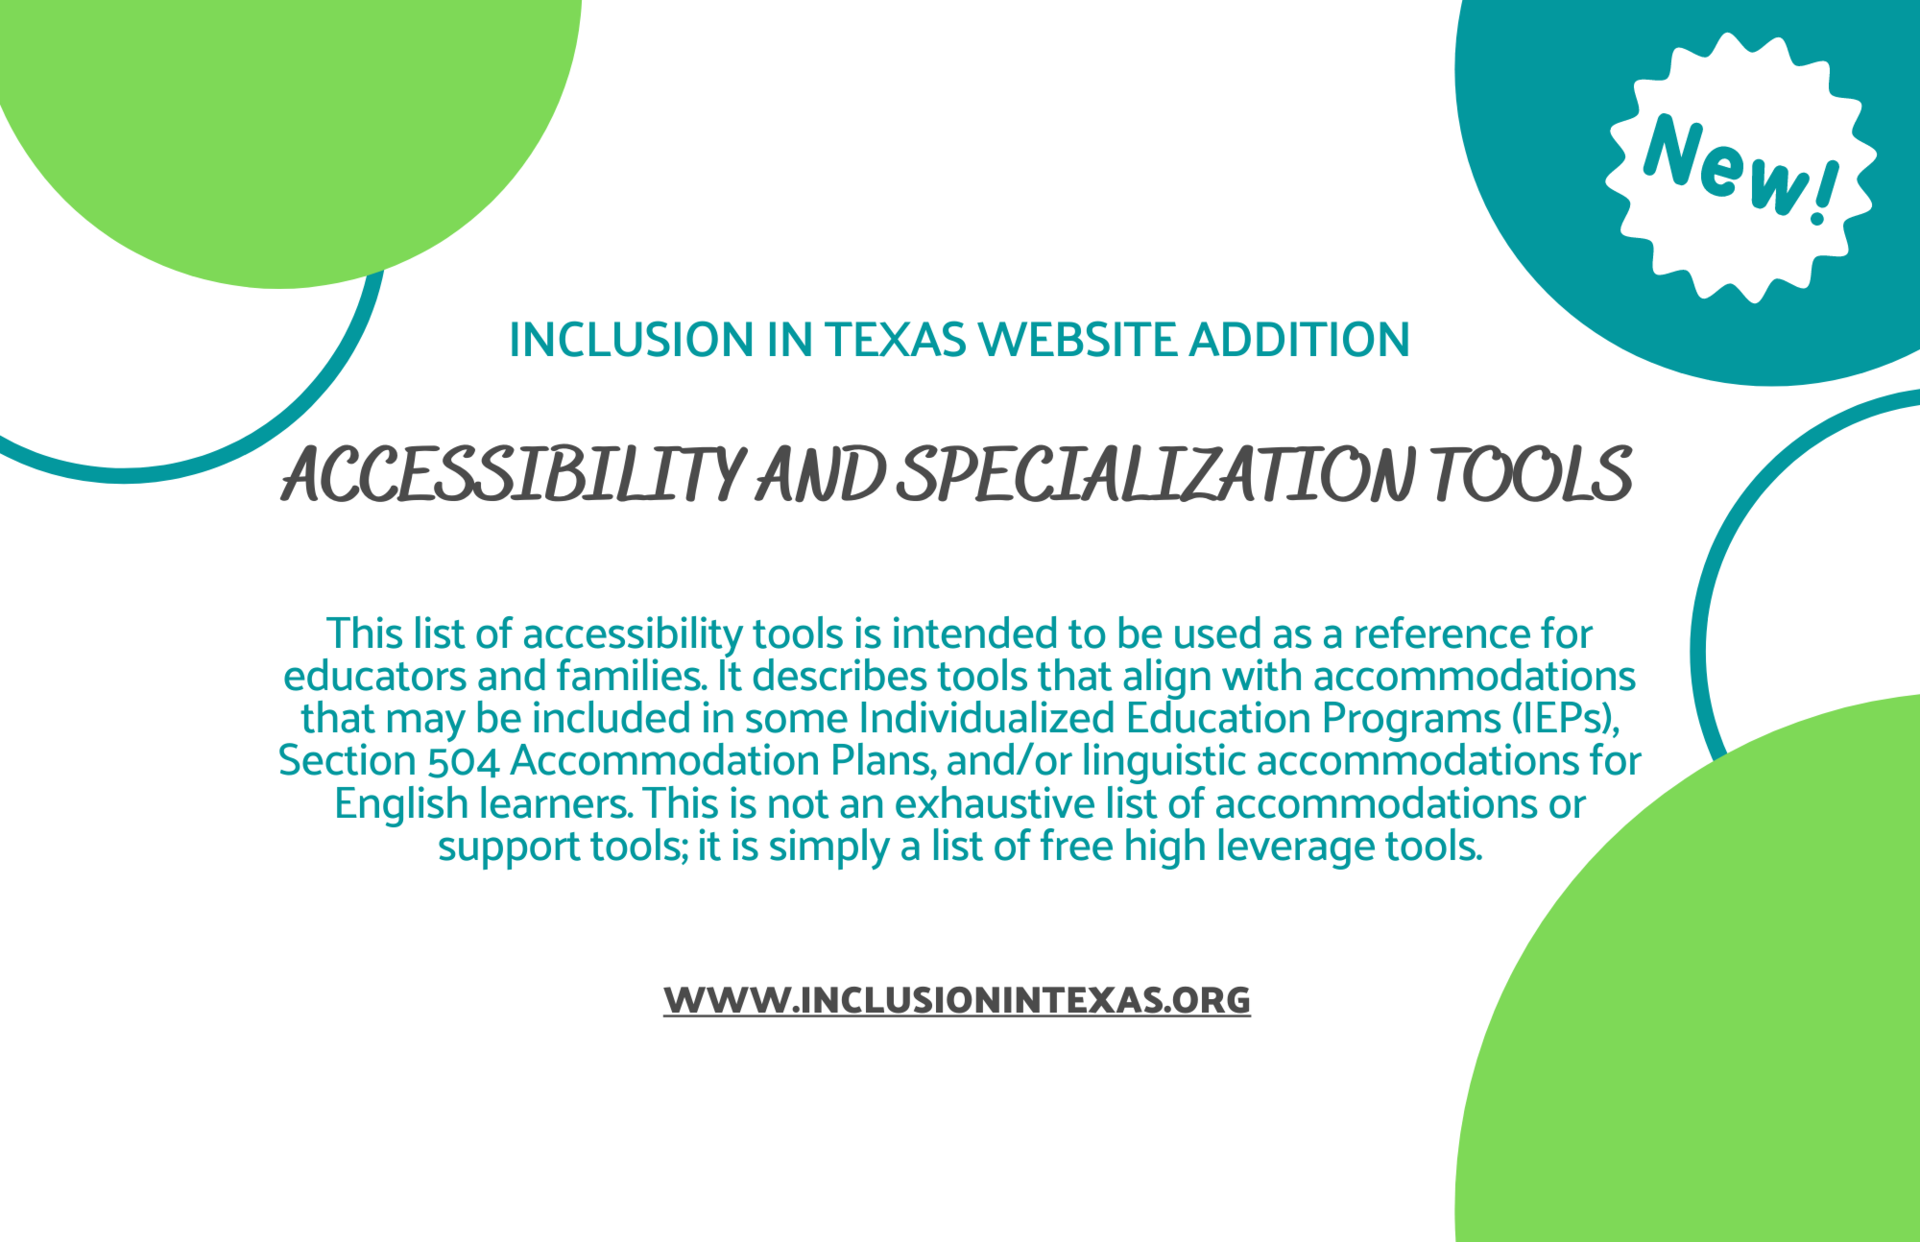 Inclusion in Texas Website Addition Accessibility and Specialization Tools  This list of accessibility tools is intended to be used as a reference for educators and families. It describes tools that align with accommodations that may be included in some Individualized Education Programs (IEPs), Section 504 Accommodation Plans, and/or linguistic accommodations for English learners. This is not an exhaustive list of accommodations or support tools; it is simply a list of free high leverage tools.